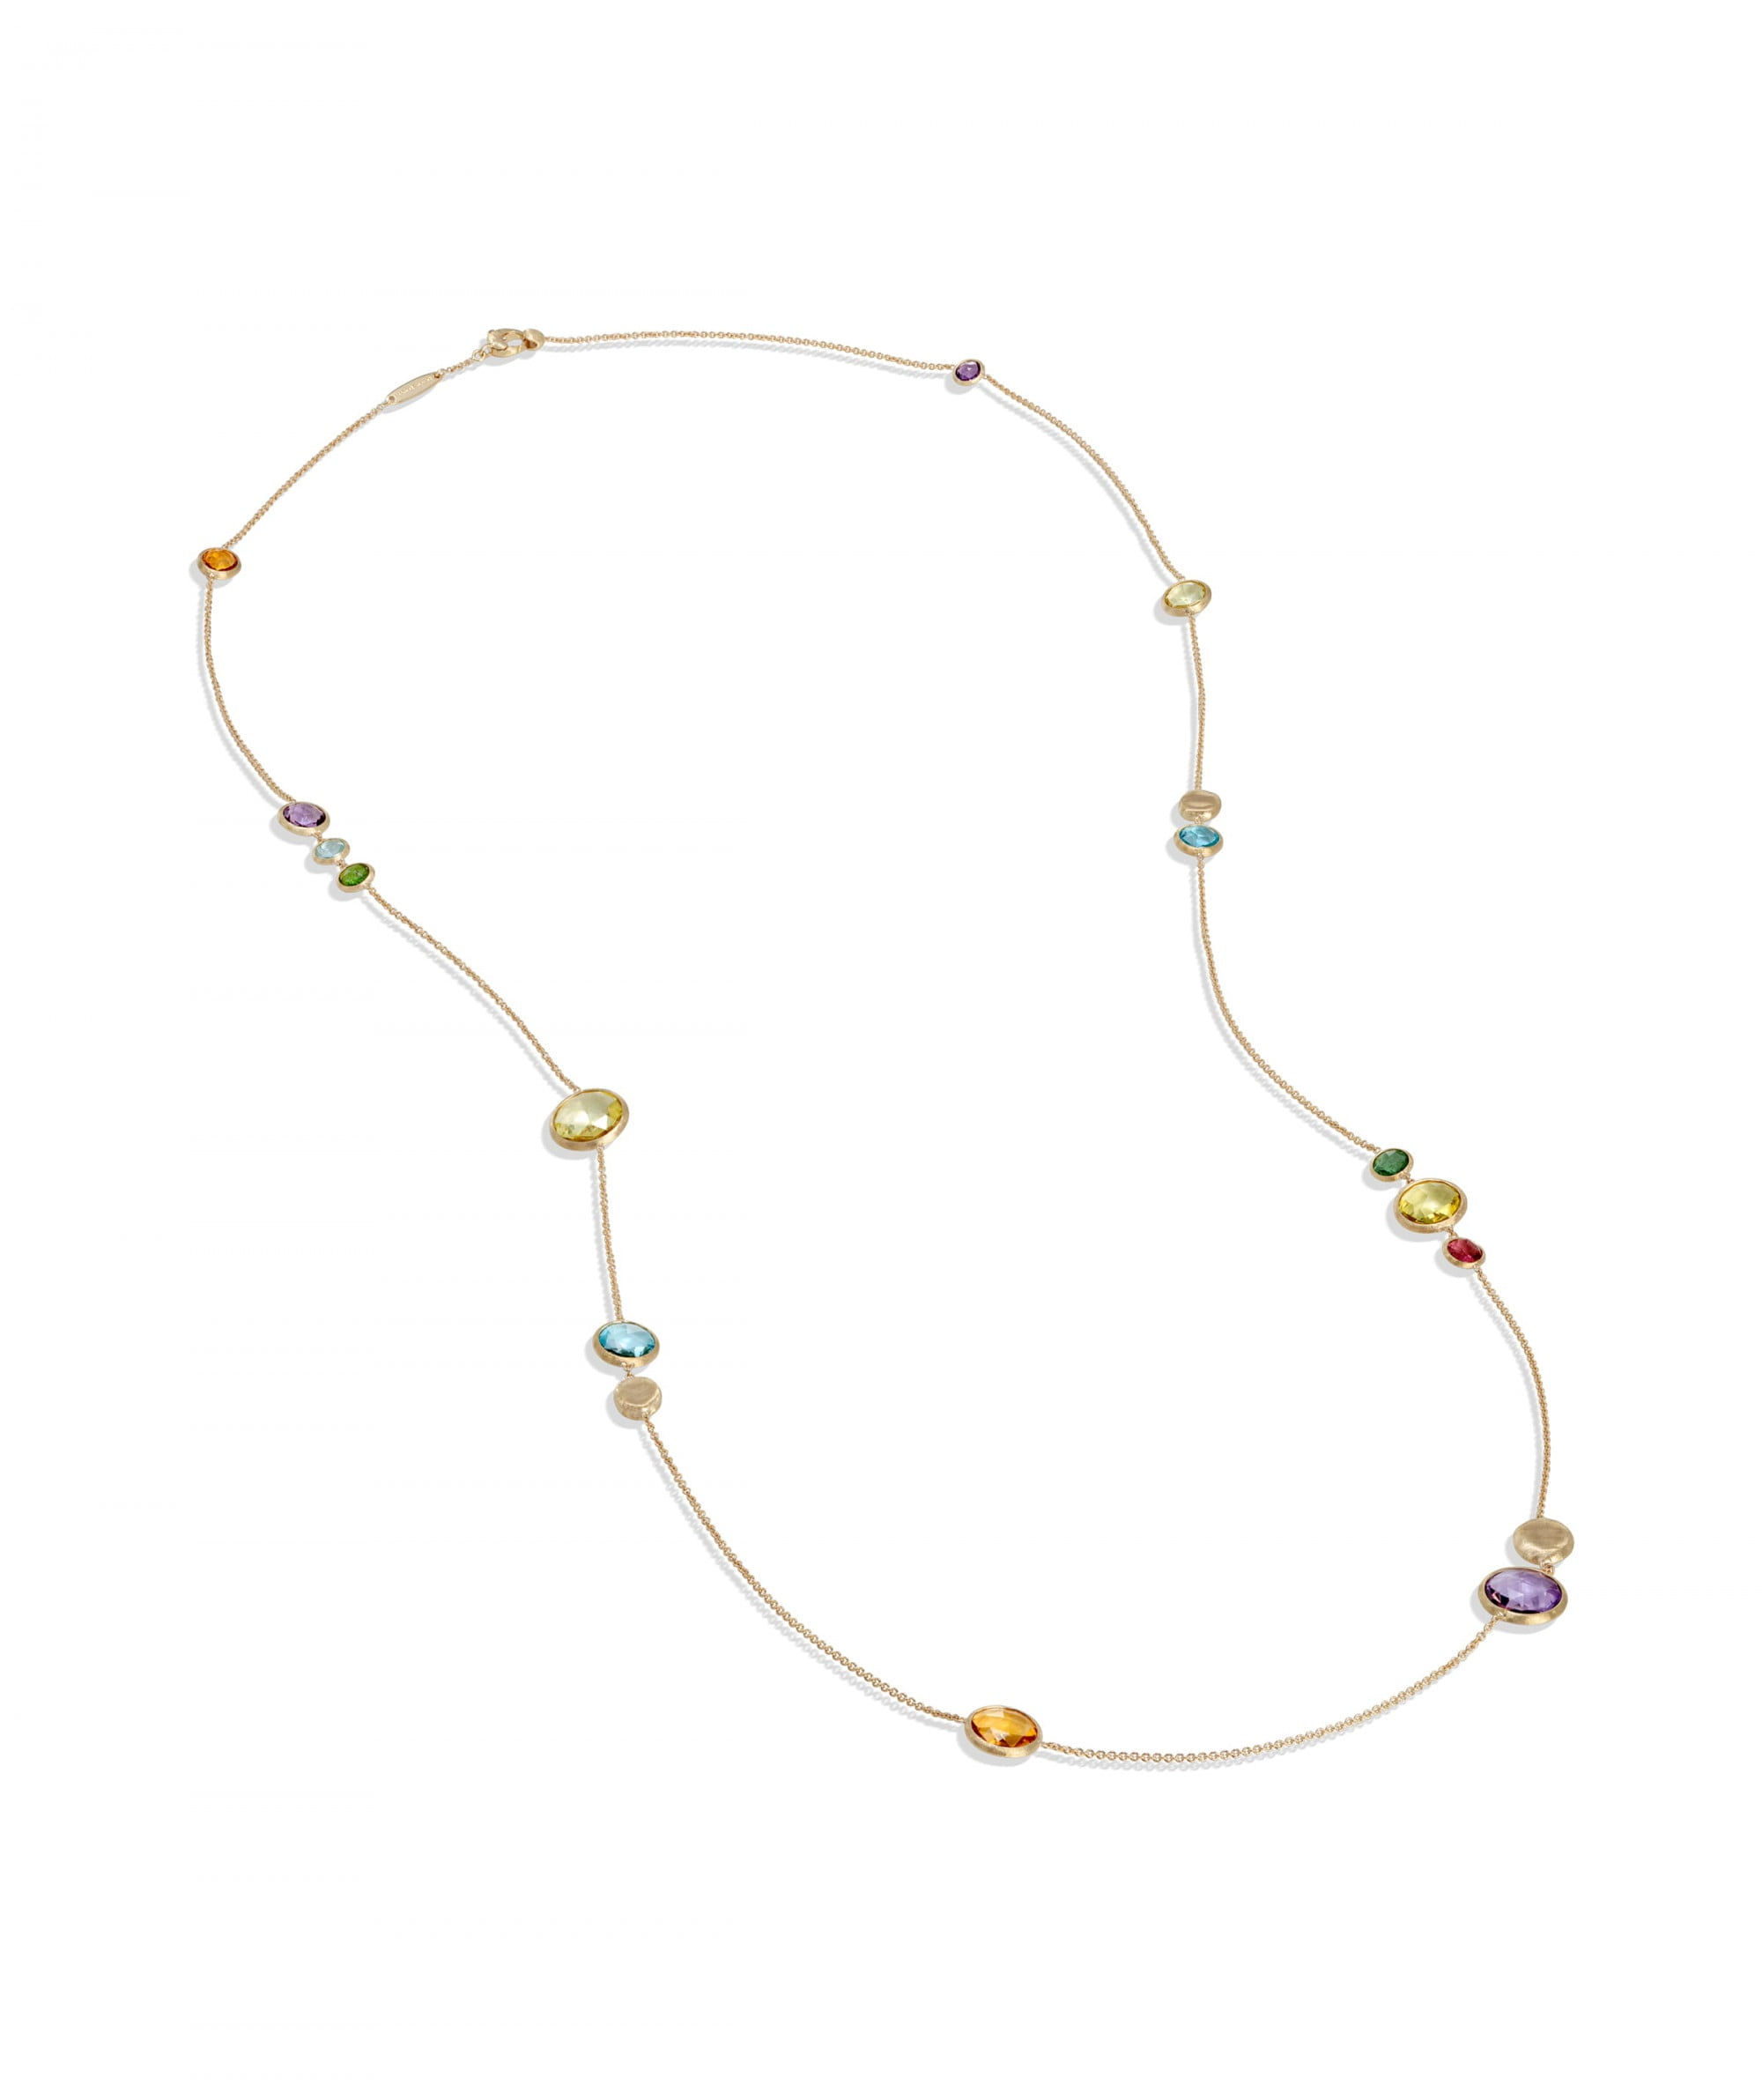 Jaipur Light Colour Necklace in 18k Yellow Gold with Mixed Gemstones Long - Orsini Jewellers NZ